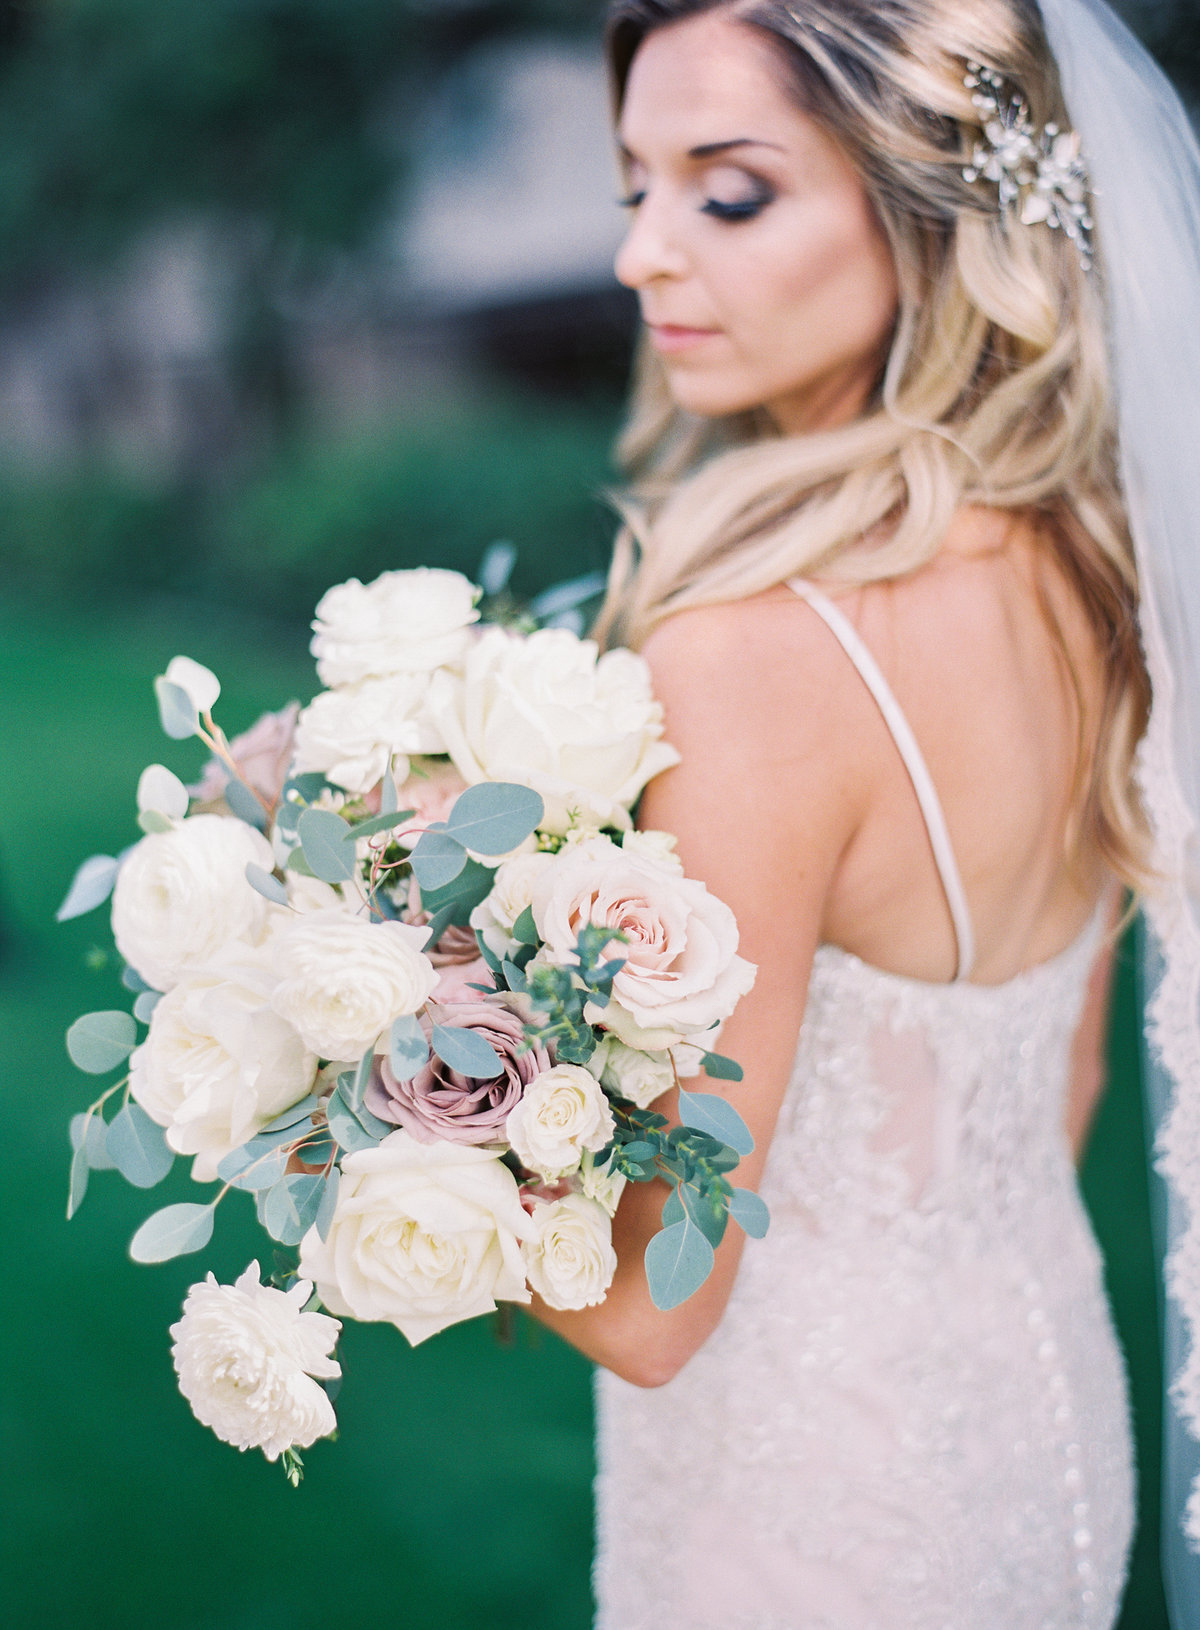 Arizona Biltmore Wedding - Mary Claire Photography-17